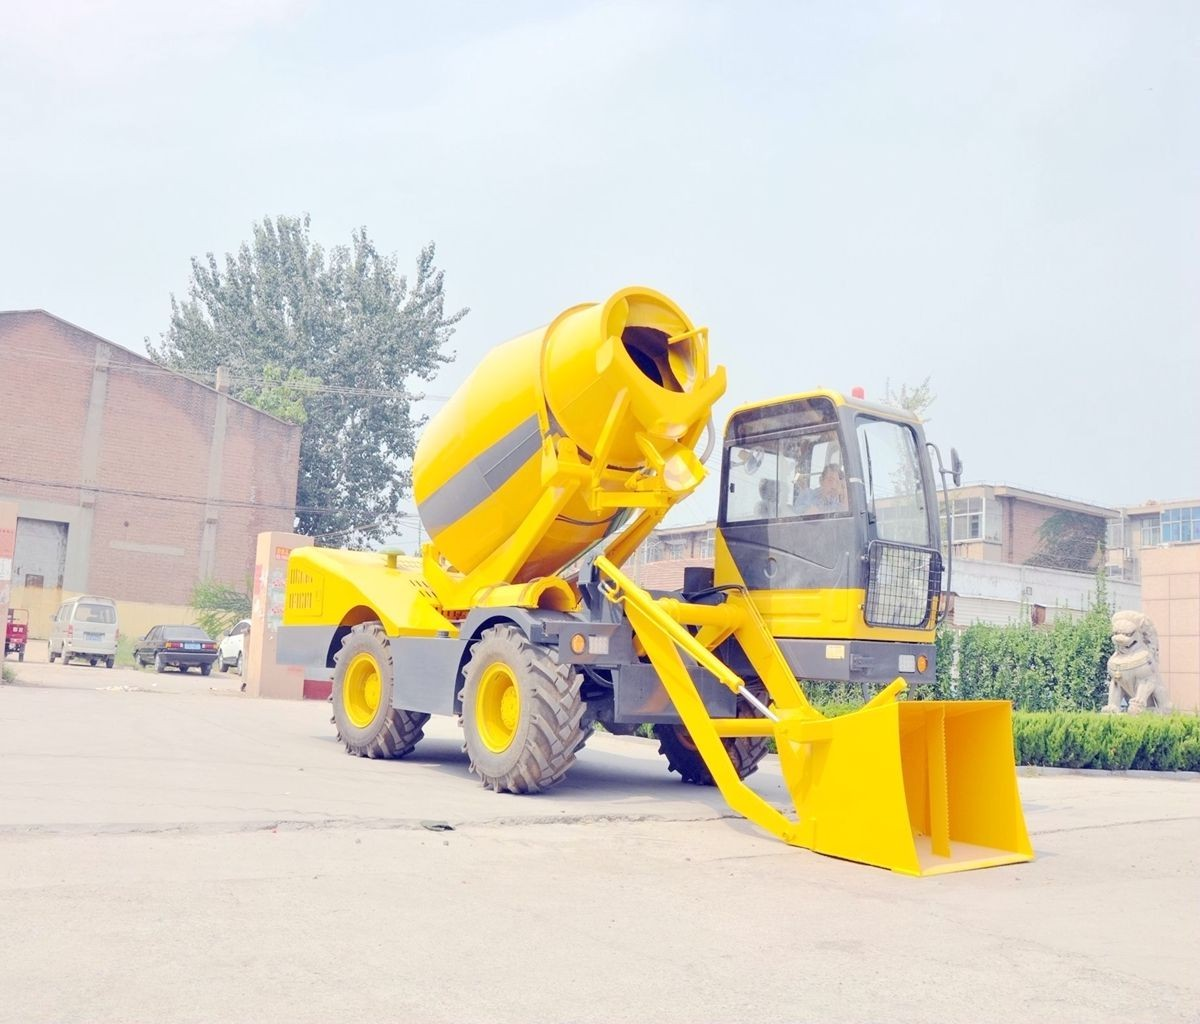 Sales 3.5M3 Batch Self-loading Concrete Mixer, Buy 3.5M3 Batch Self-loading Concrete Mixer, 3.5M3 Batch Self-loading Concrete Mixer Factory, 3.5M3 Batch Self-loading Concrete Mixer Brands